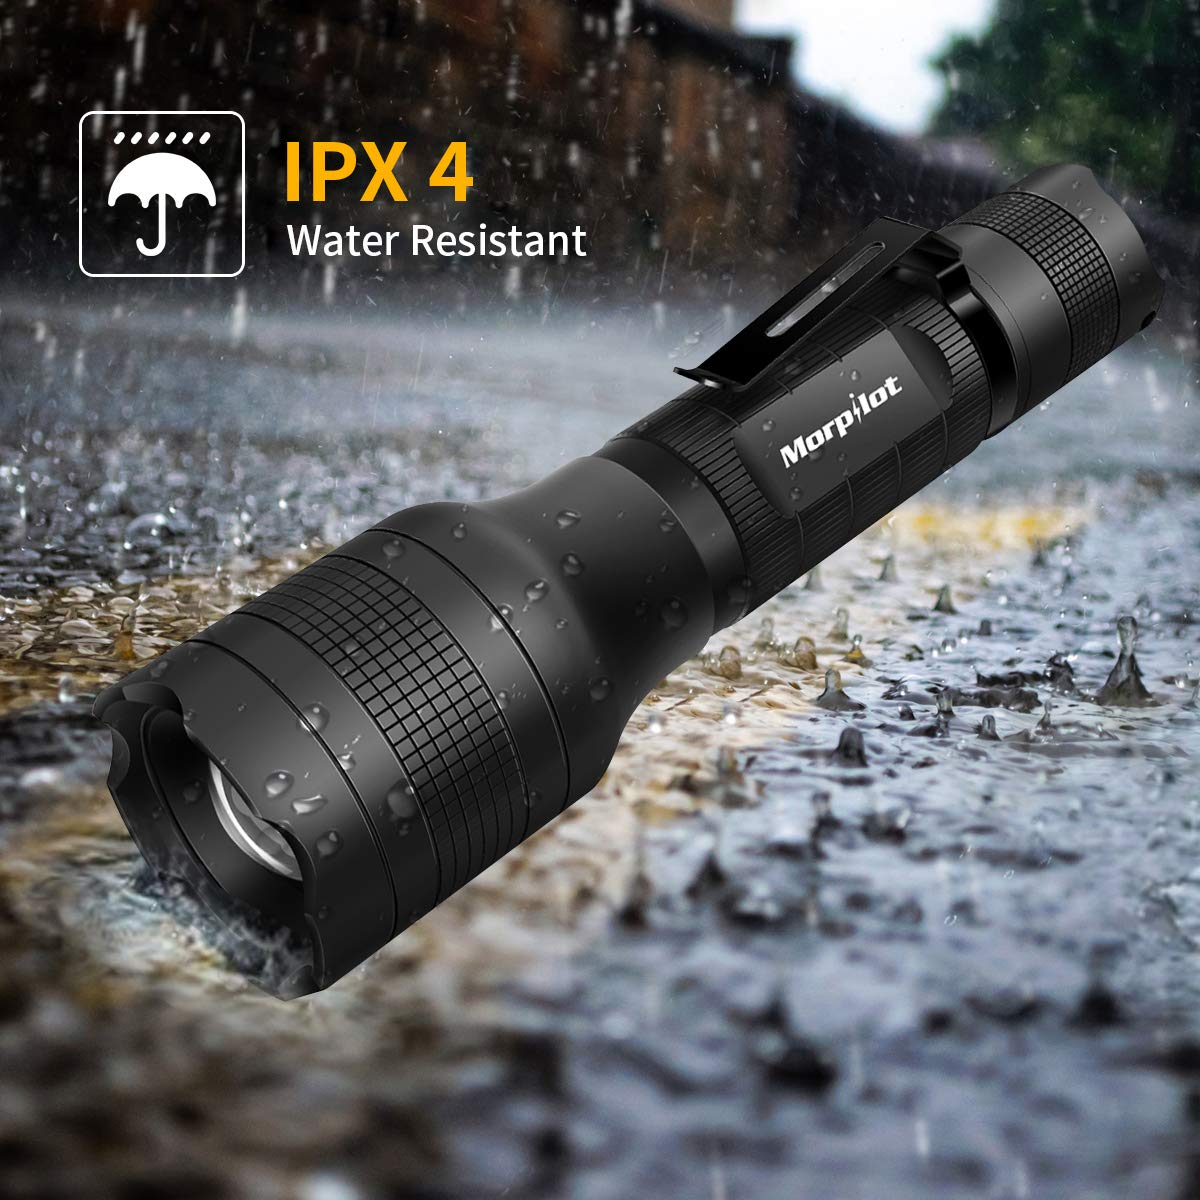 Rechargeable Flashlight Morpilot 2 IN 1 UV & LED Torch (White Light and UV Light) with Pocket Clip, 500 Lumens and 4 Light Modes Flashlight Zoom OUT/IN Waterproof IPX 4 (Battery and charger Included)T